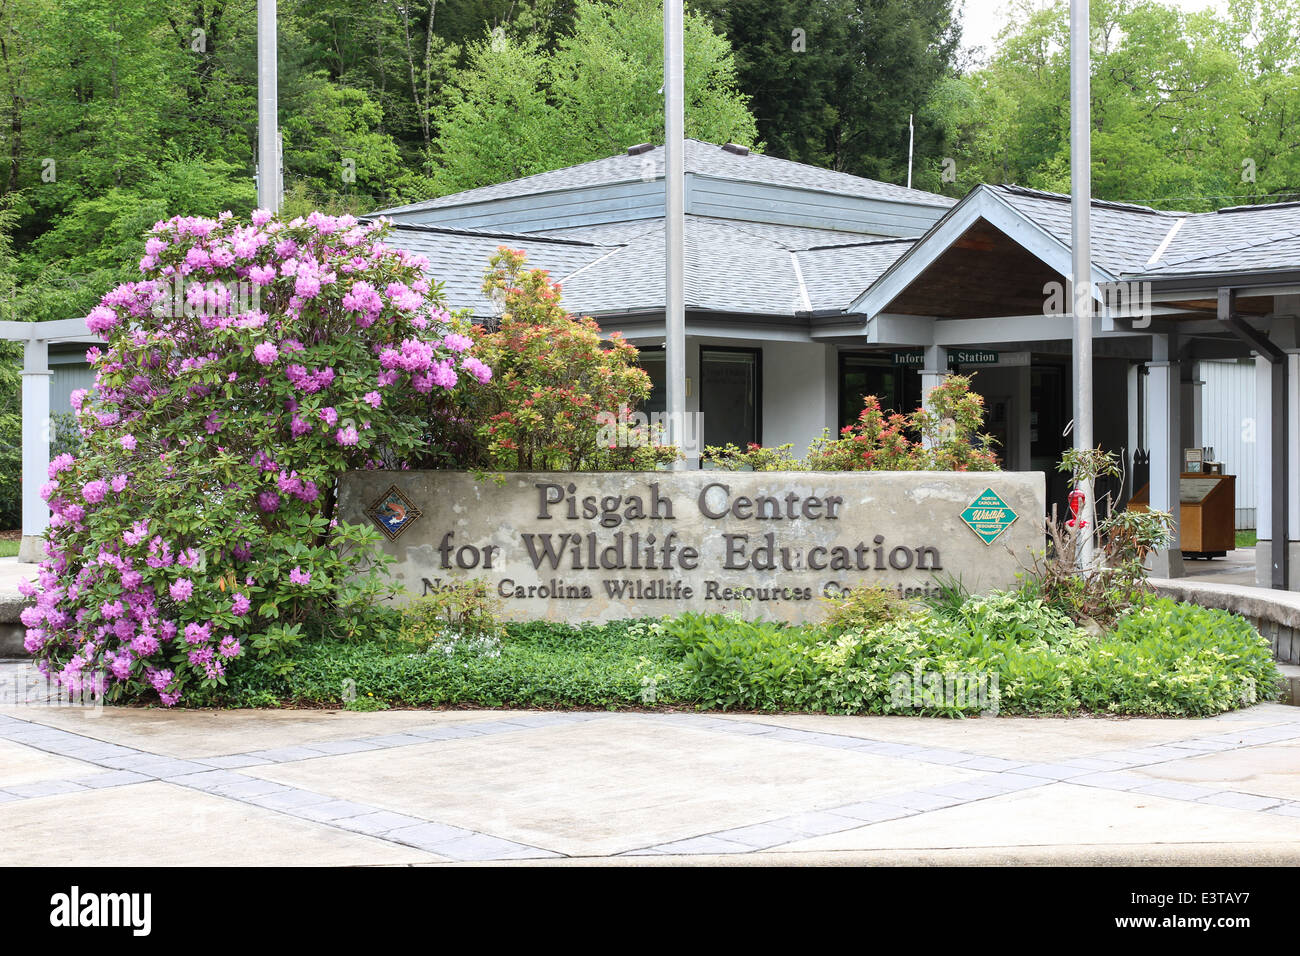 Pisgah Centre for Wildlife Education in Pisgah Forest National près de Brevard, Caroline du Nord est l'accueil d'une Banque D'Images